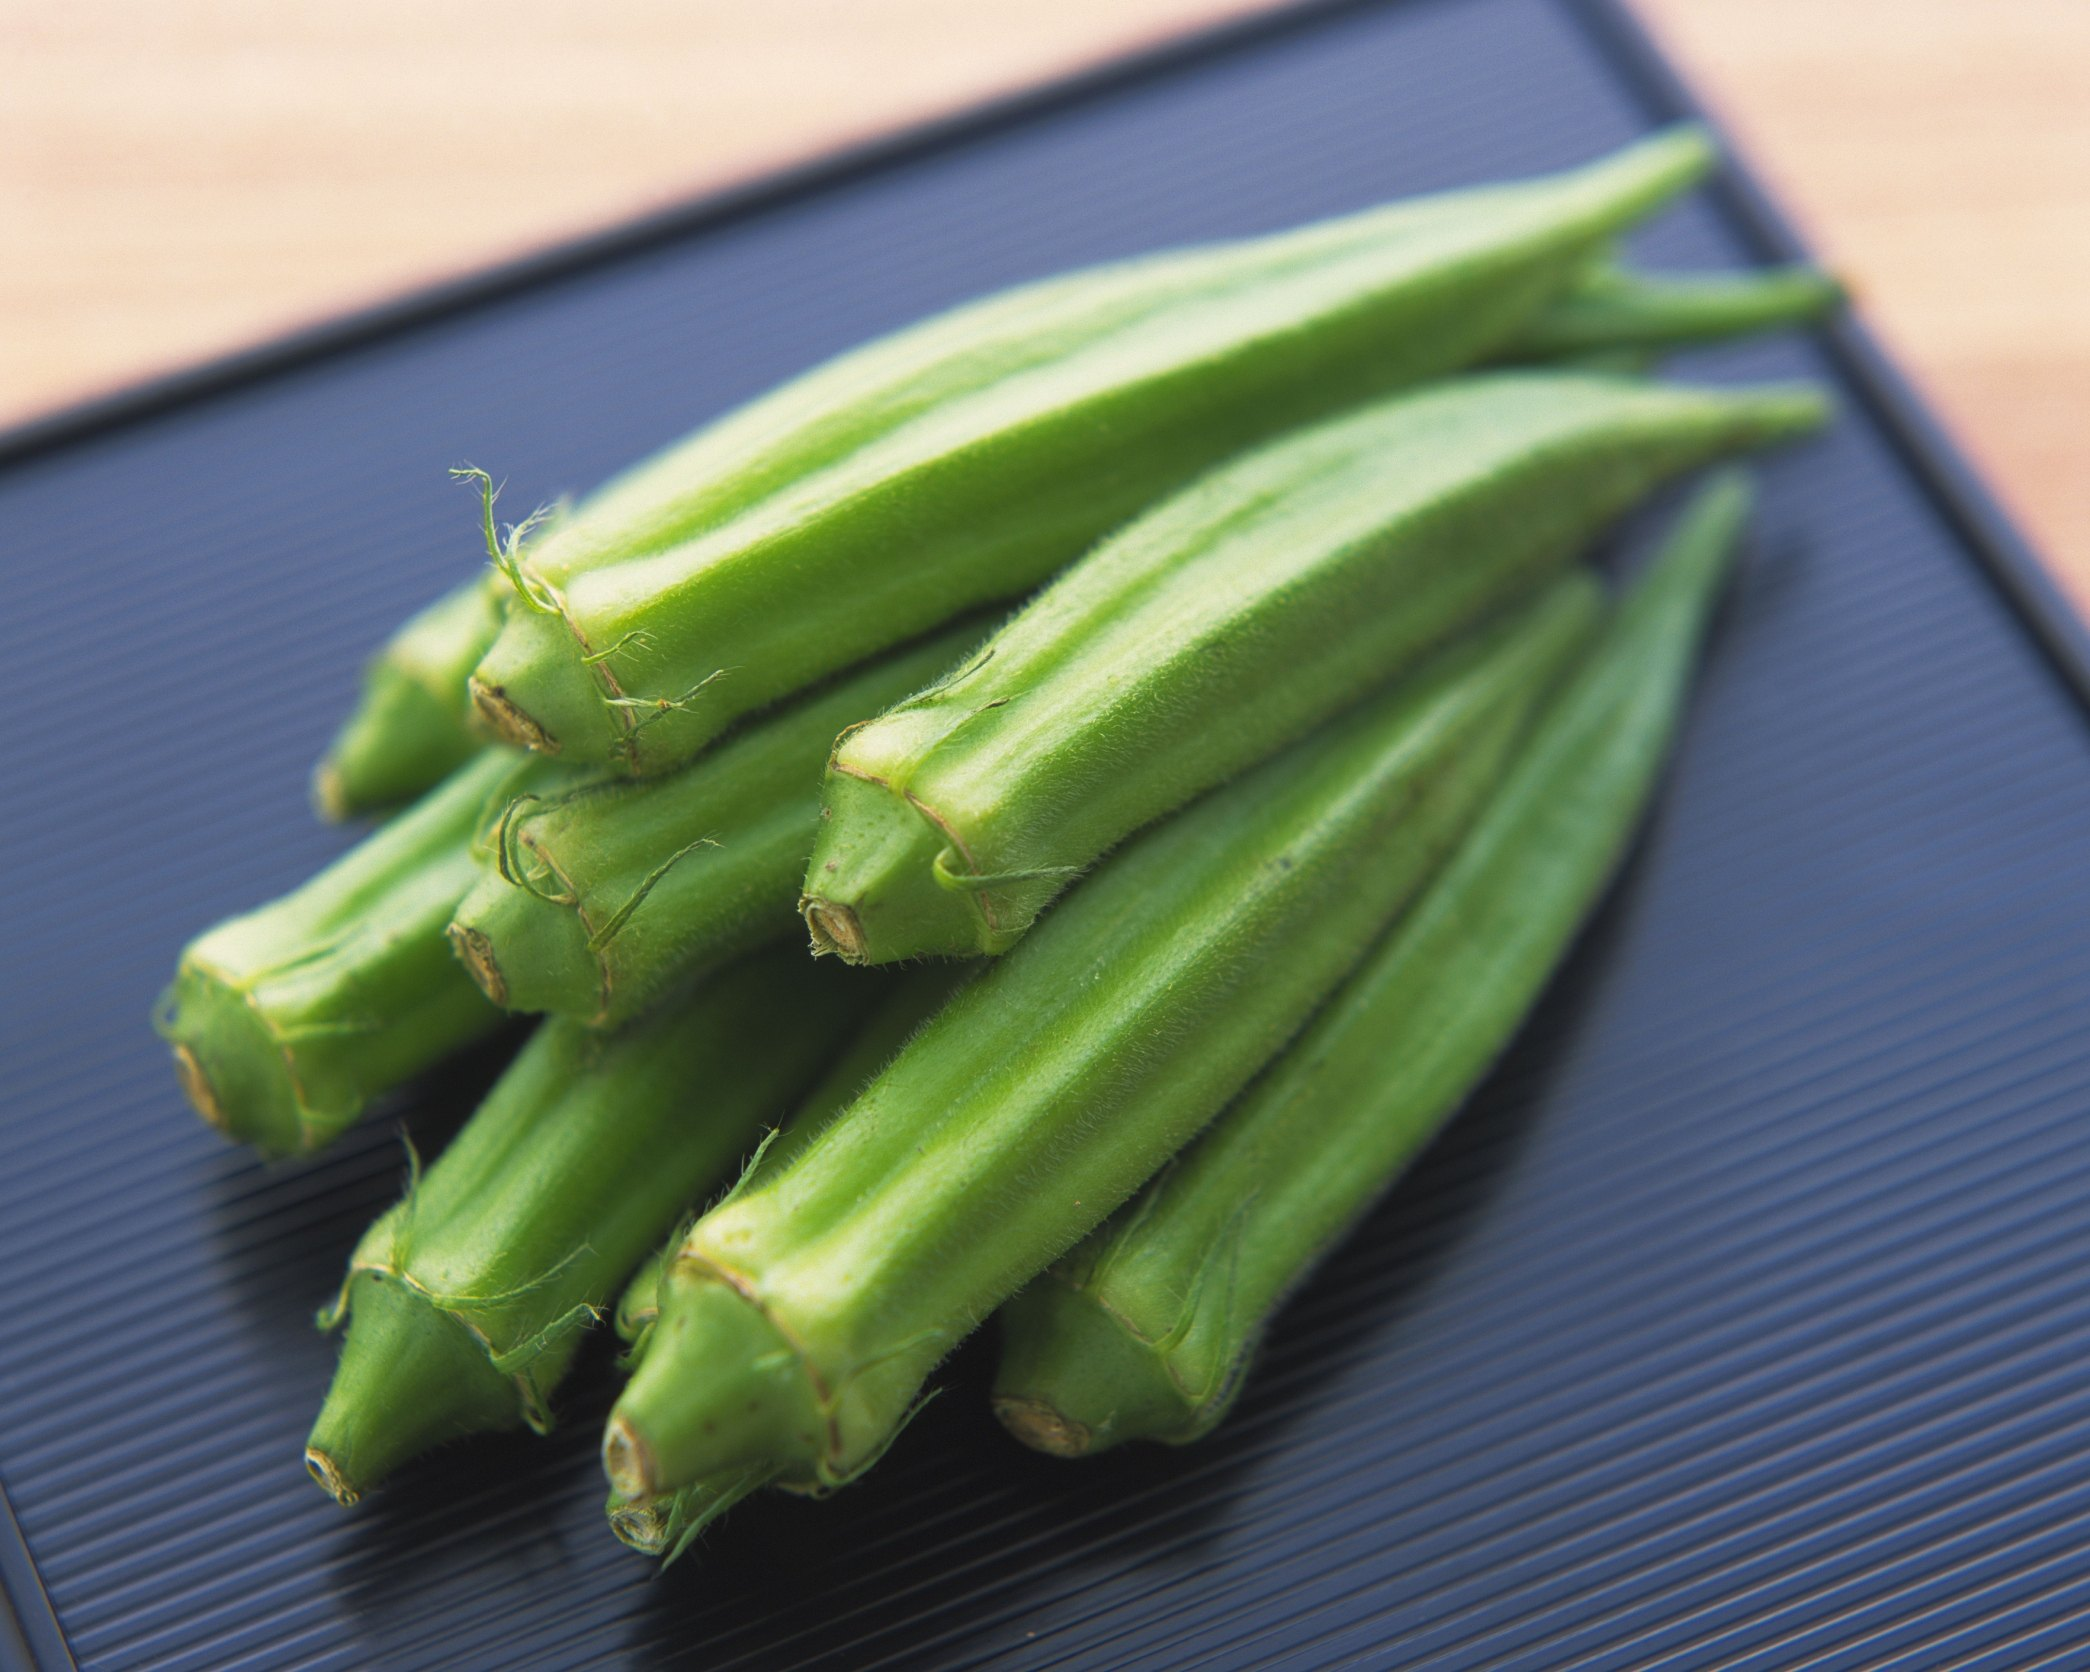 Staggering Freezer Bags How To Freeze Okra Out How To Tell When Okra Is Ripe Ehow How To Freeze Okra Garden houzz 01 How To Freeze Okra